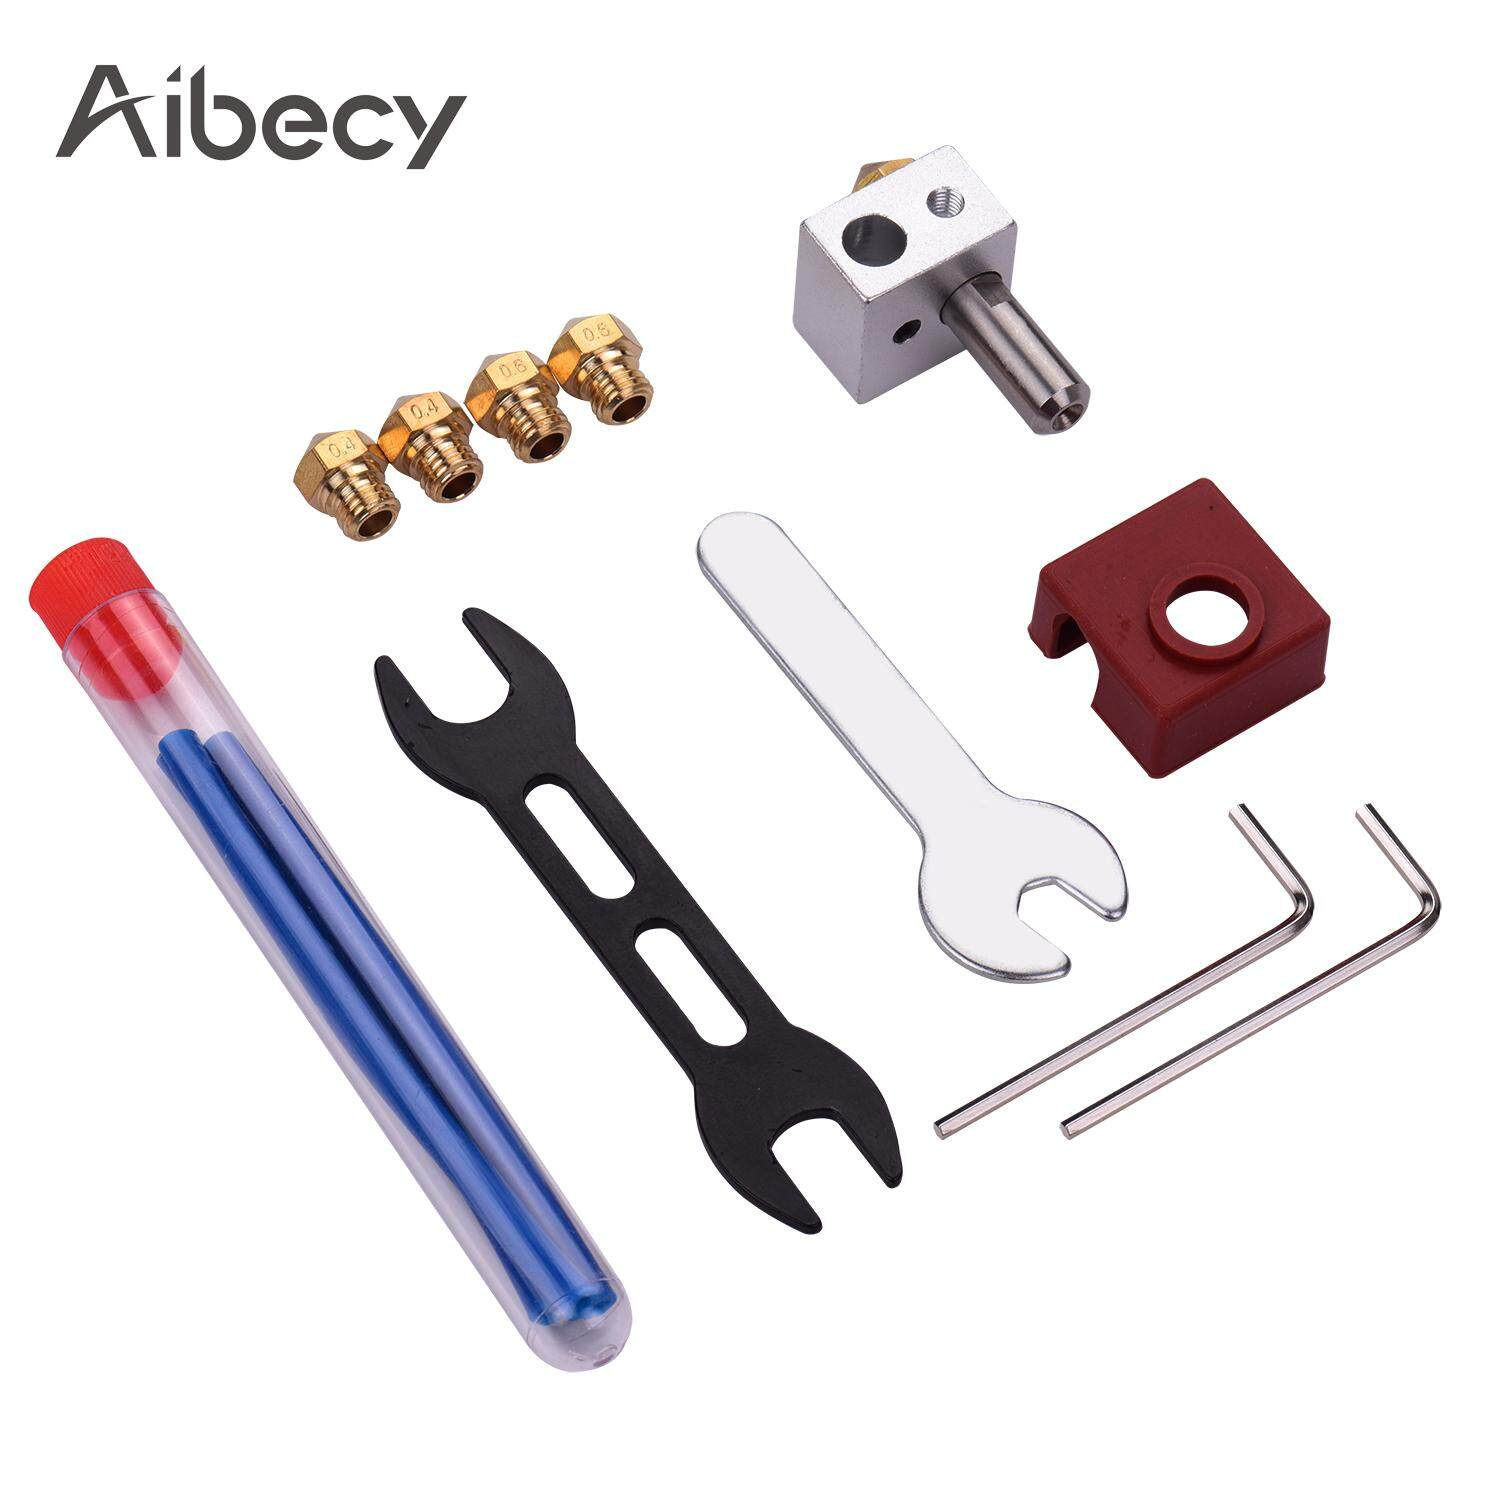 Aibecy MK10 Hotend Kit Extruder Set with Heat Block Brass Nozzle Throat Tube PTFE Tube Silicone Sock Compatible with FlashForge Creator Pro Creator X Dreamer Finder Inventor